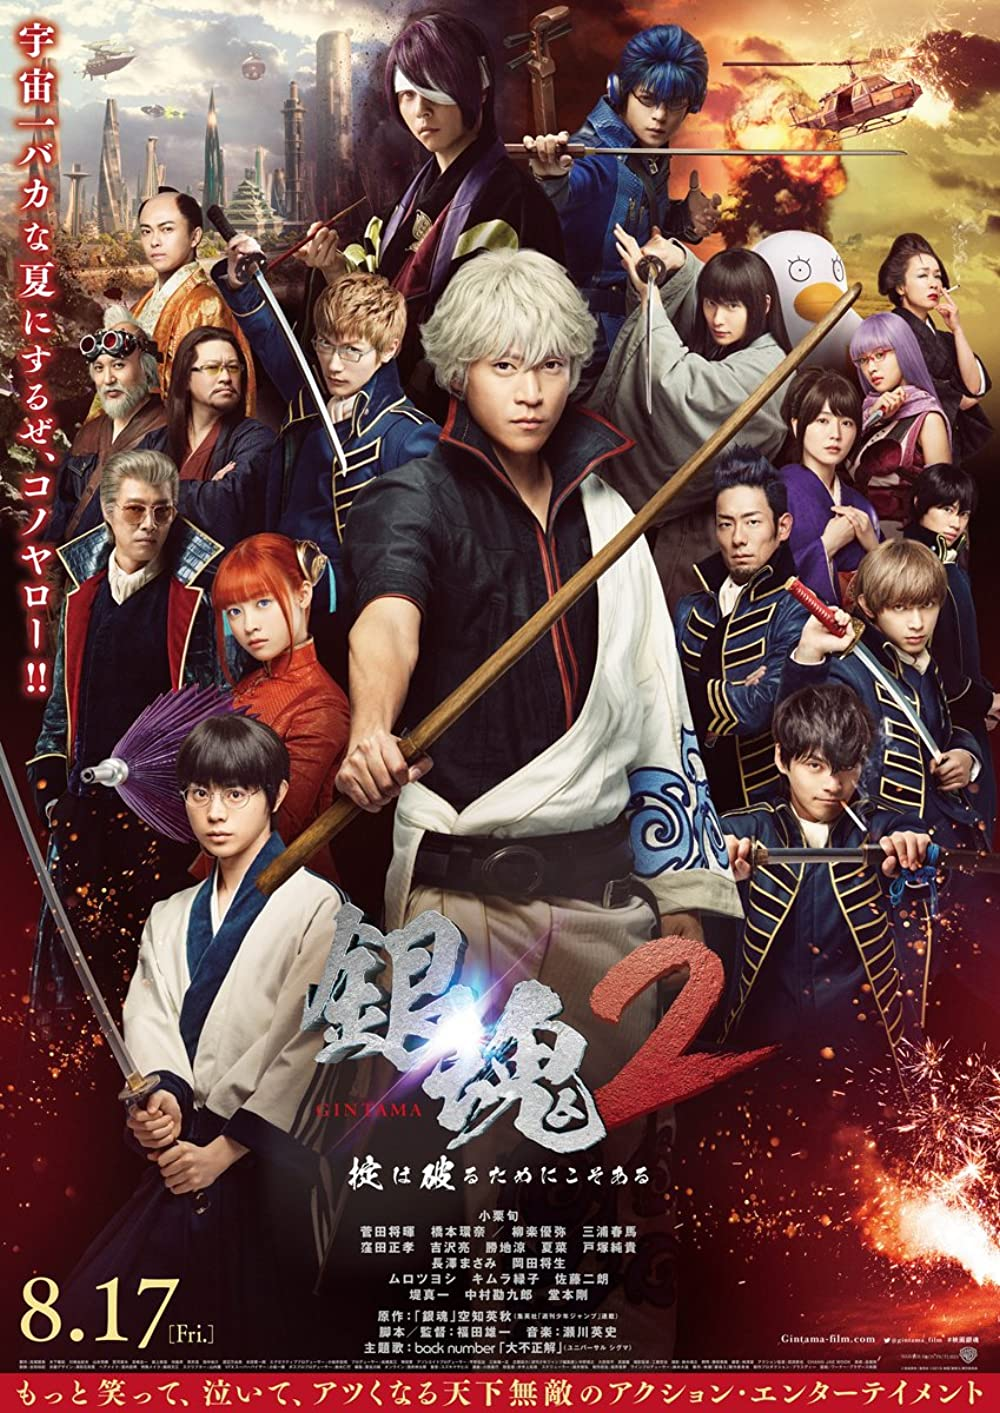 Gintama 2: Rules are Made to be Broken (2018) Subtitle Indonesia